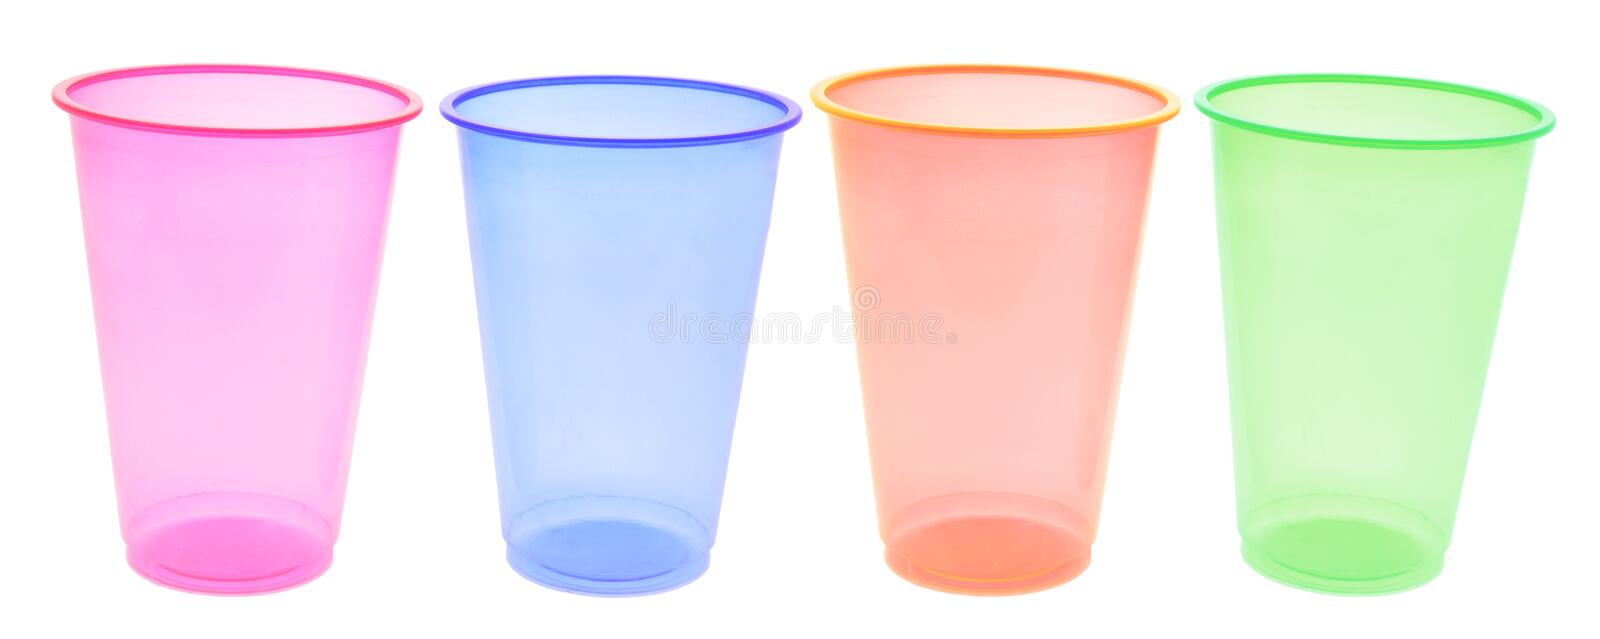 Pink Plastic Cups stock photo